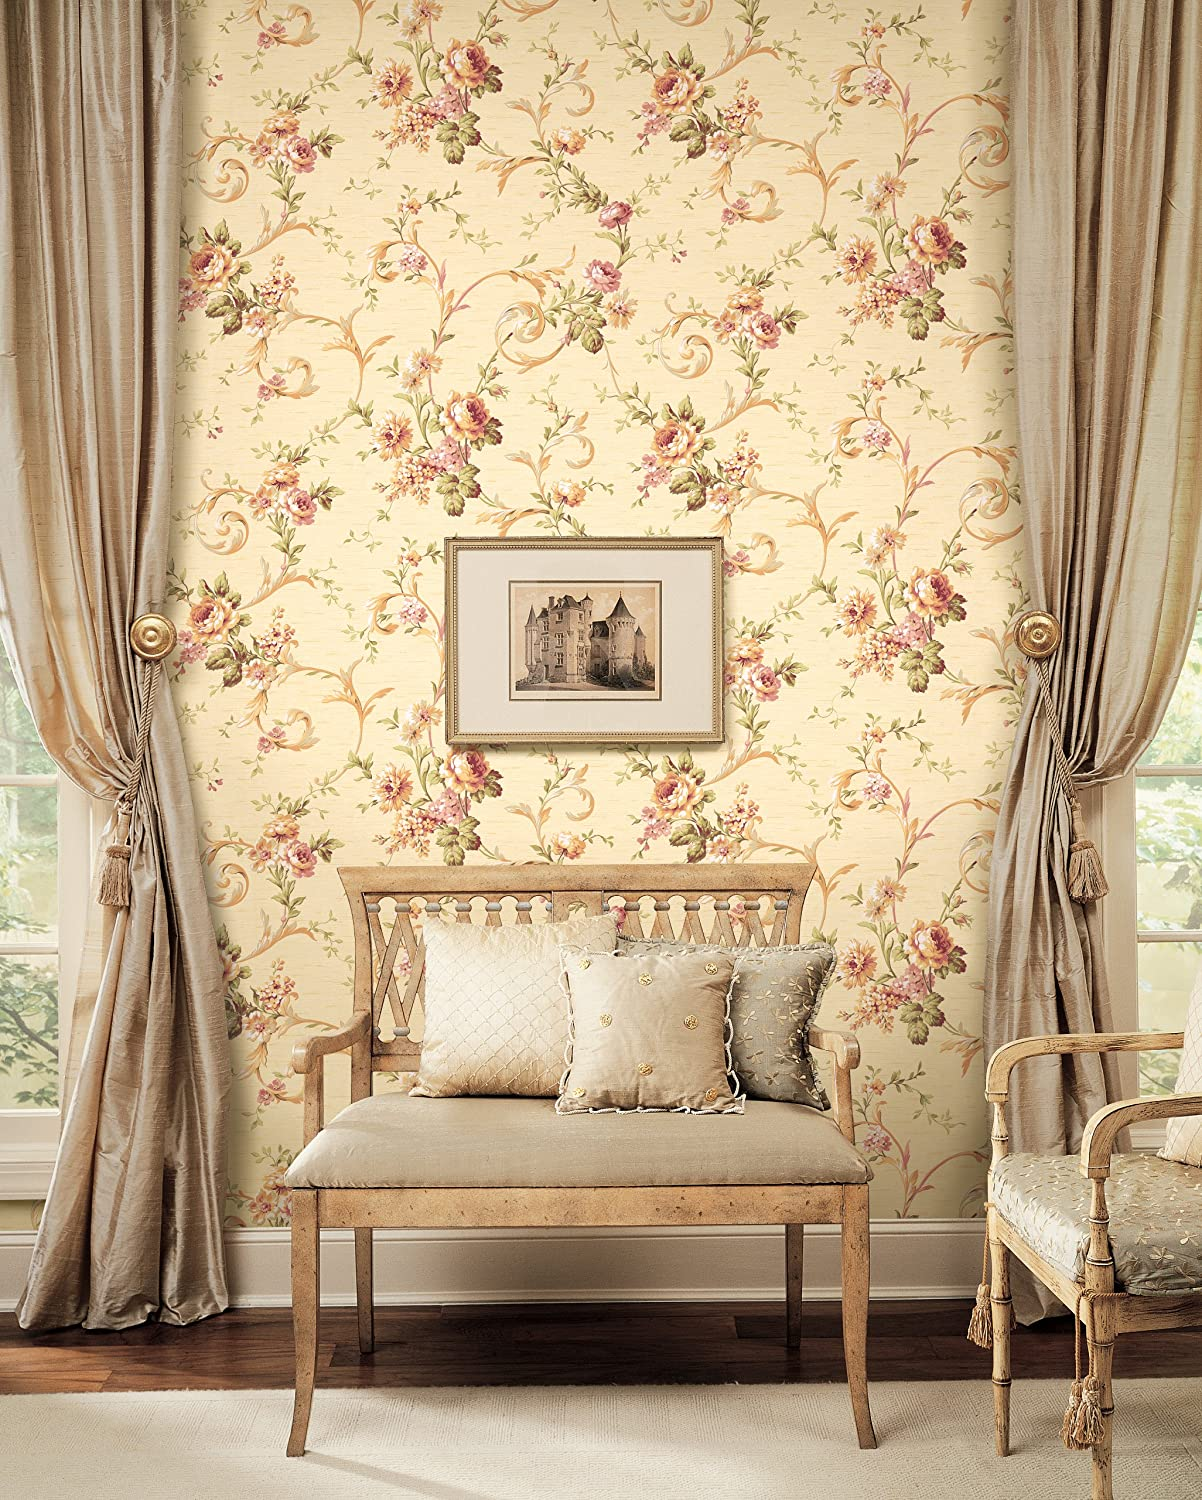 Amazon.com: York Wallcoverings CG5641 Willow Woods Floral Scroll ...